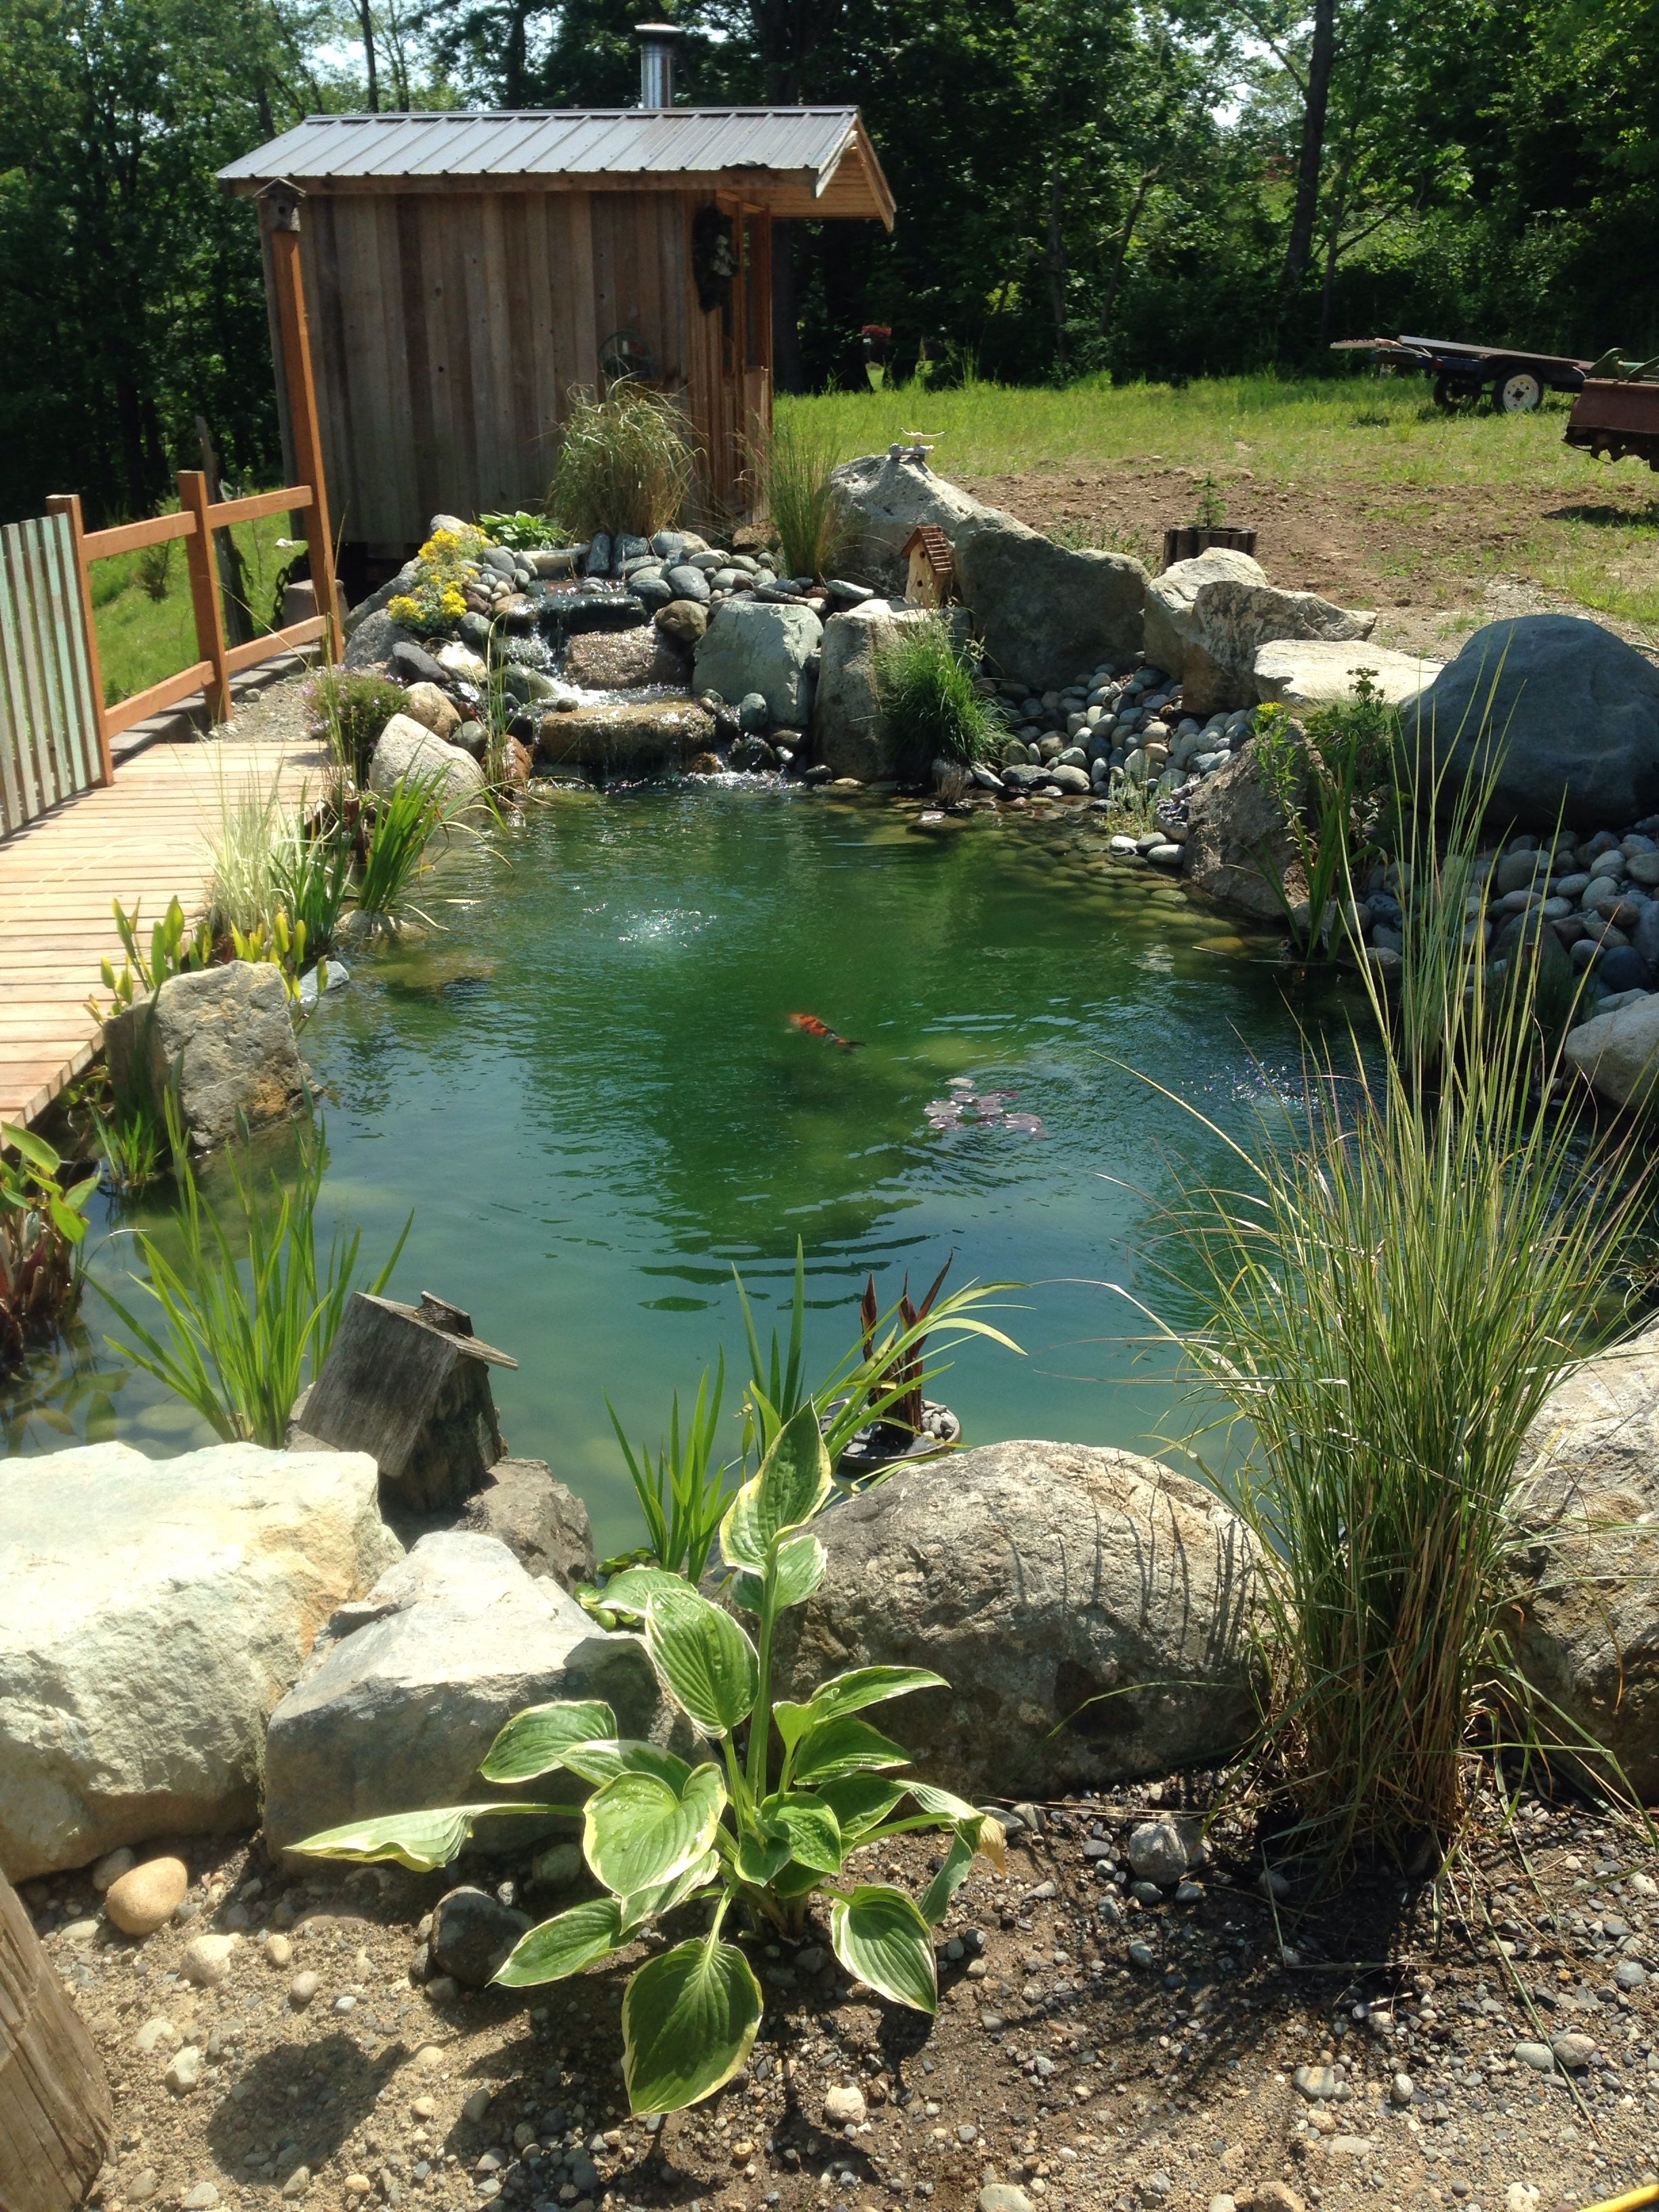 Our new back yard pond. Made and designed by Gordy. So beautiful.  13 koi swimming around